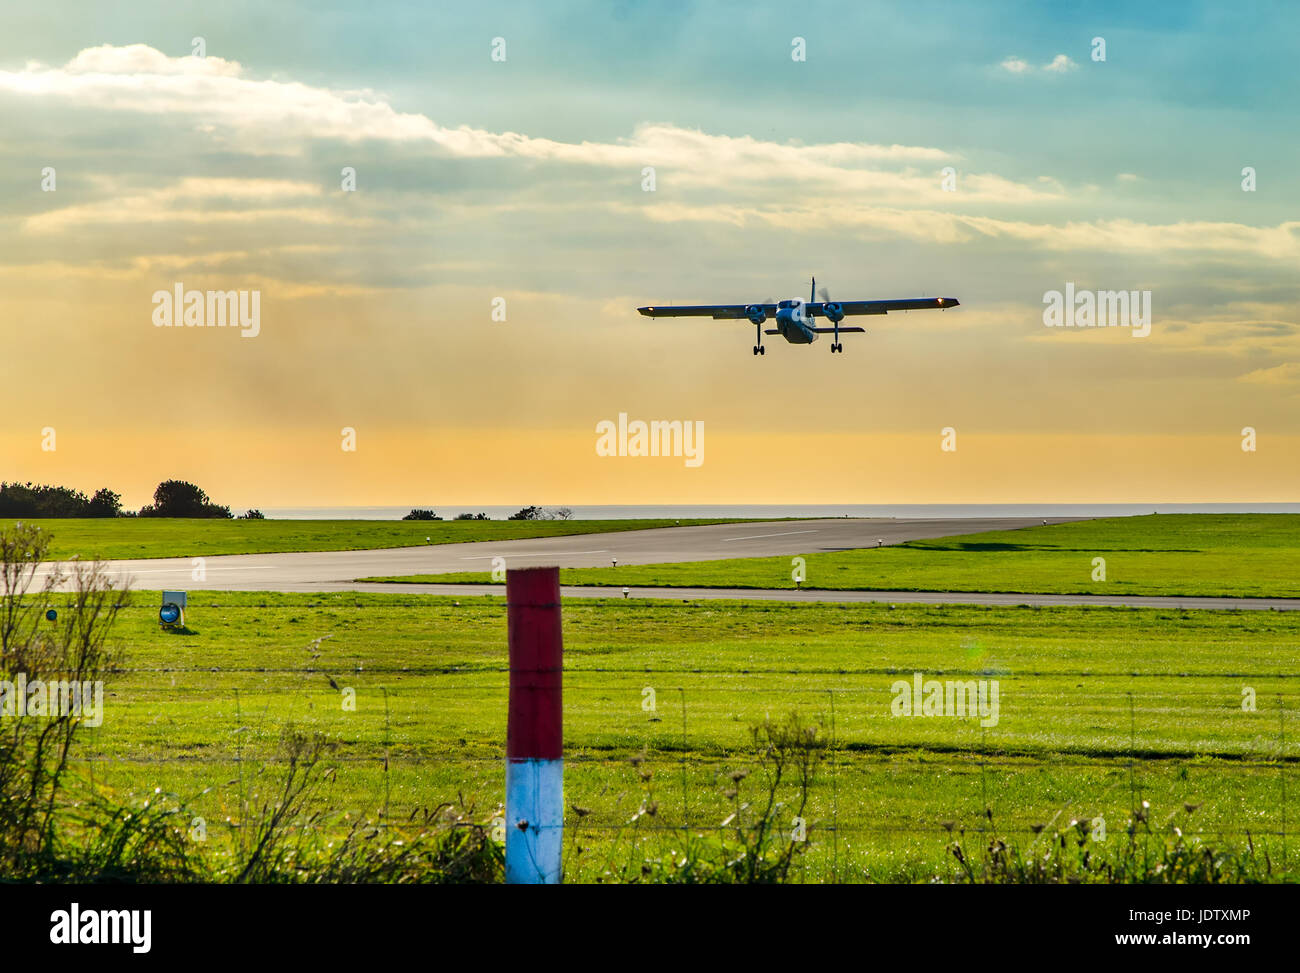 Britten Norman Islander aircraft departing Lands End Airport, Cornwall. - Stock Image